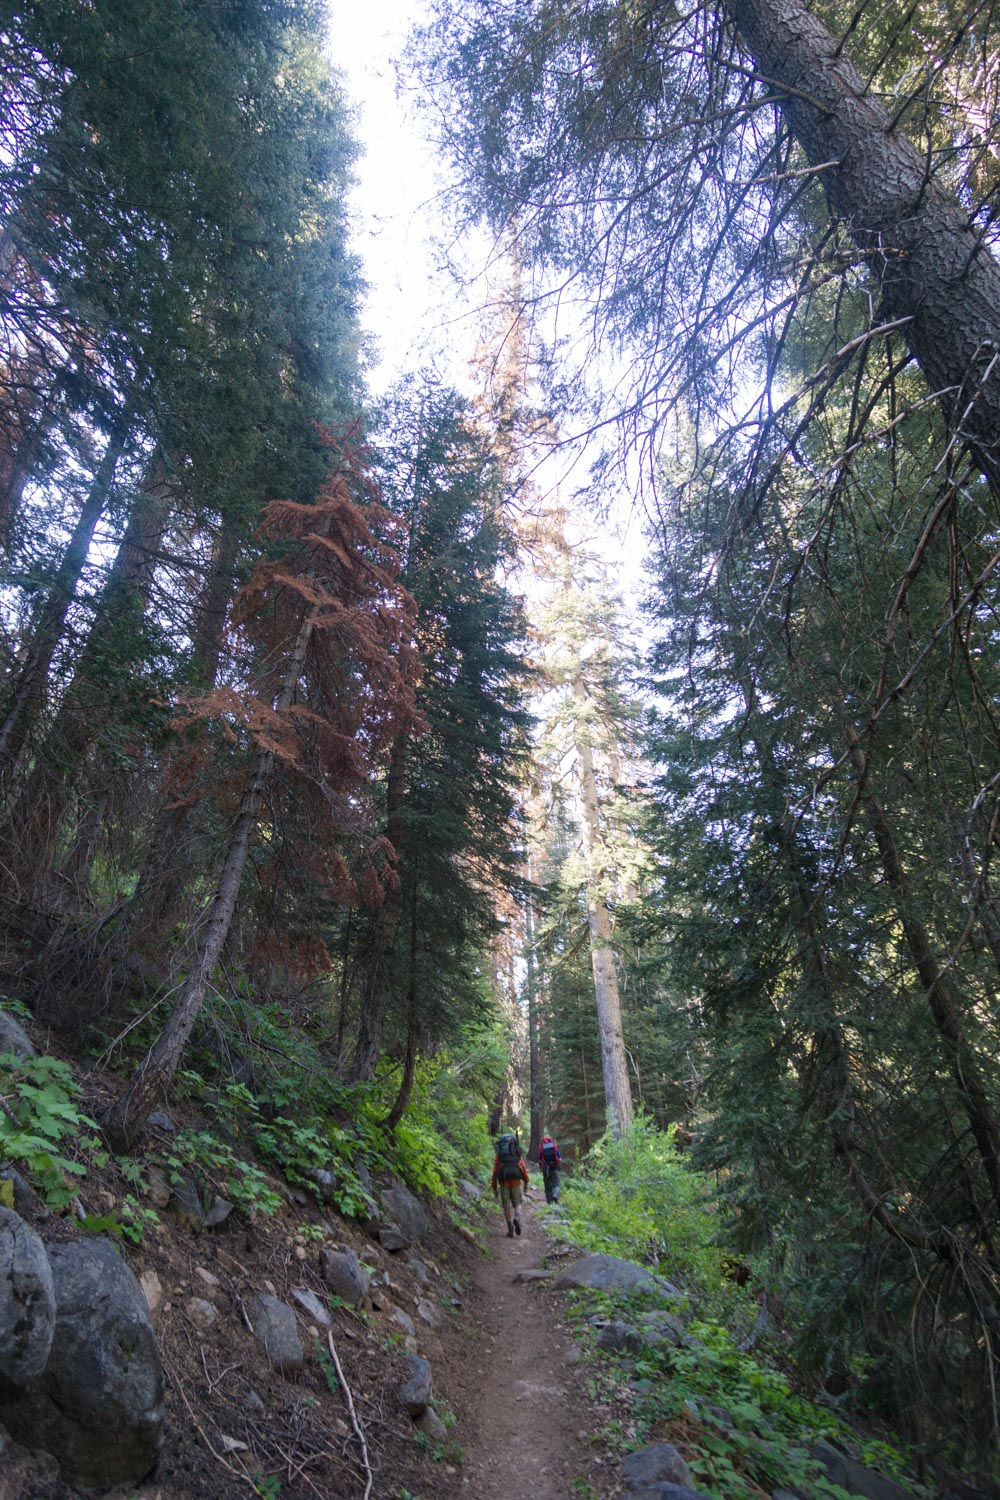 Backpacking through Sequoia National Park